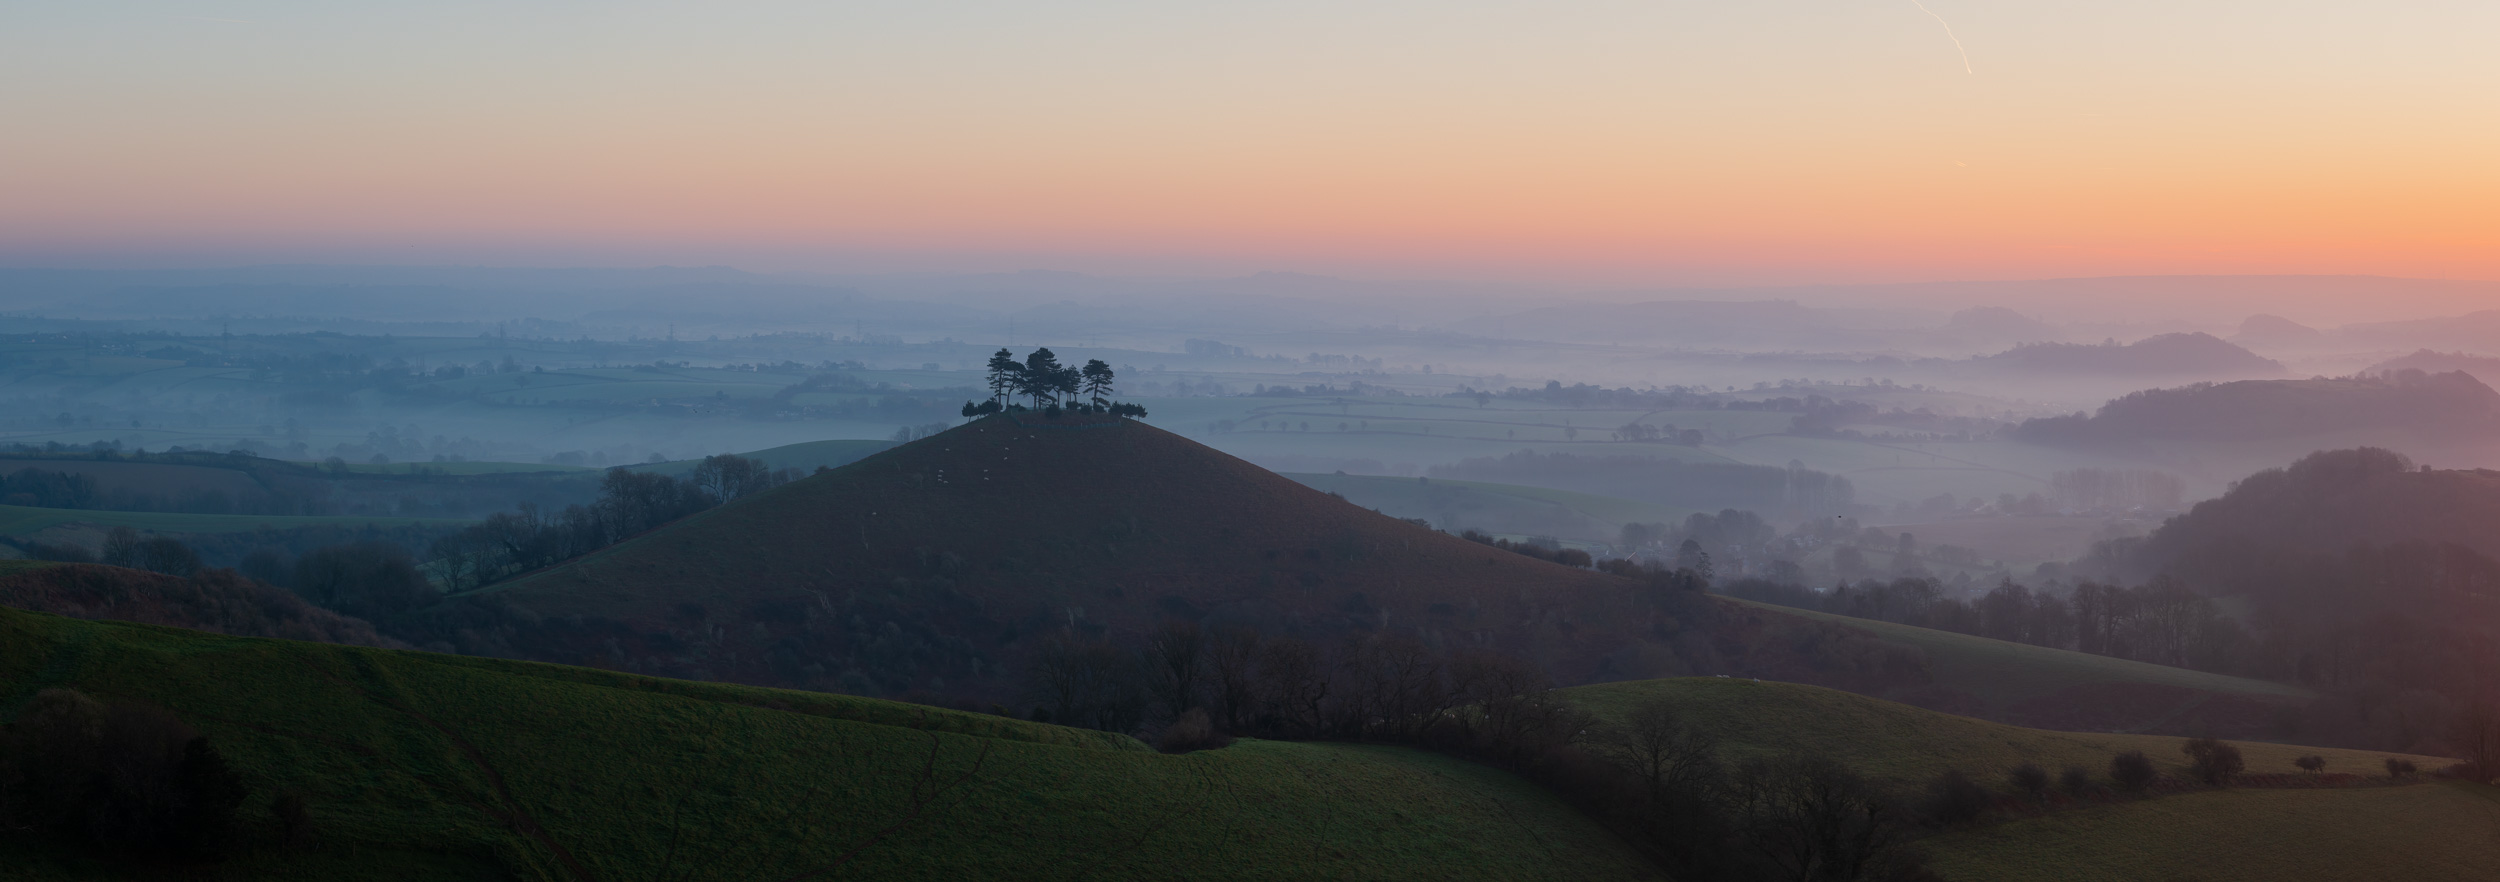 Colmer's Hill, Dorset  - Nikon D850, Nikkor 70-200mm f/2.8 at 82mm, f/8, 1/60th second at ISO 64.